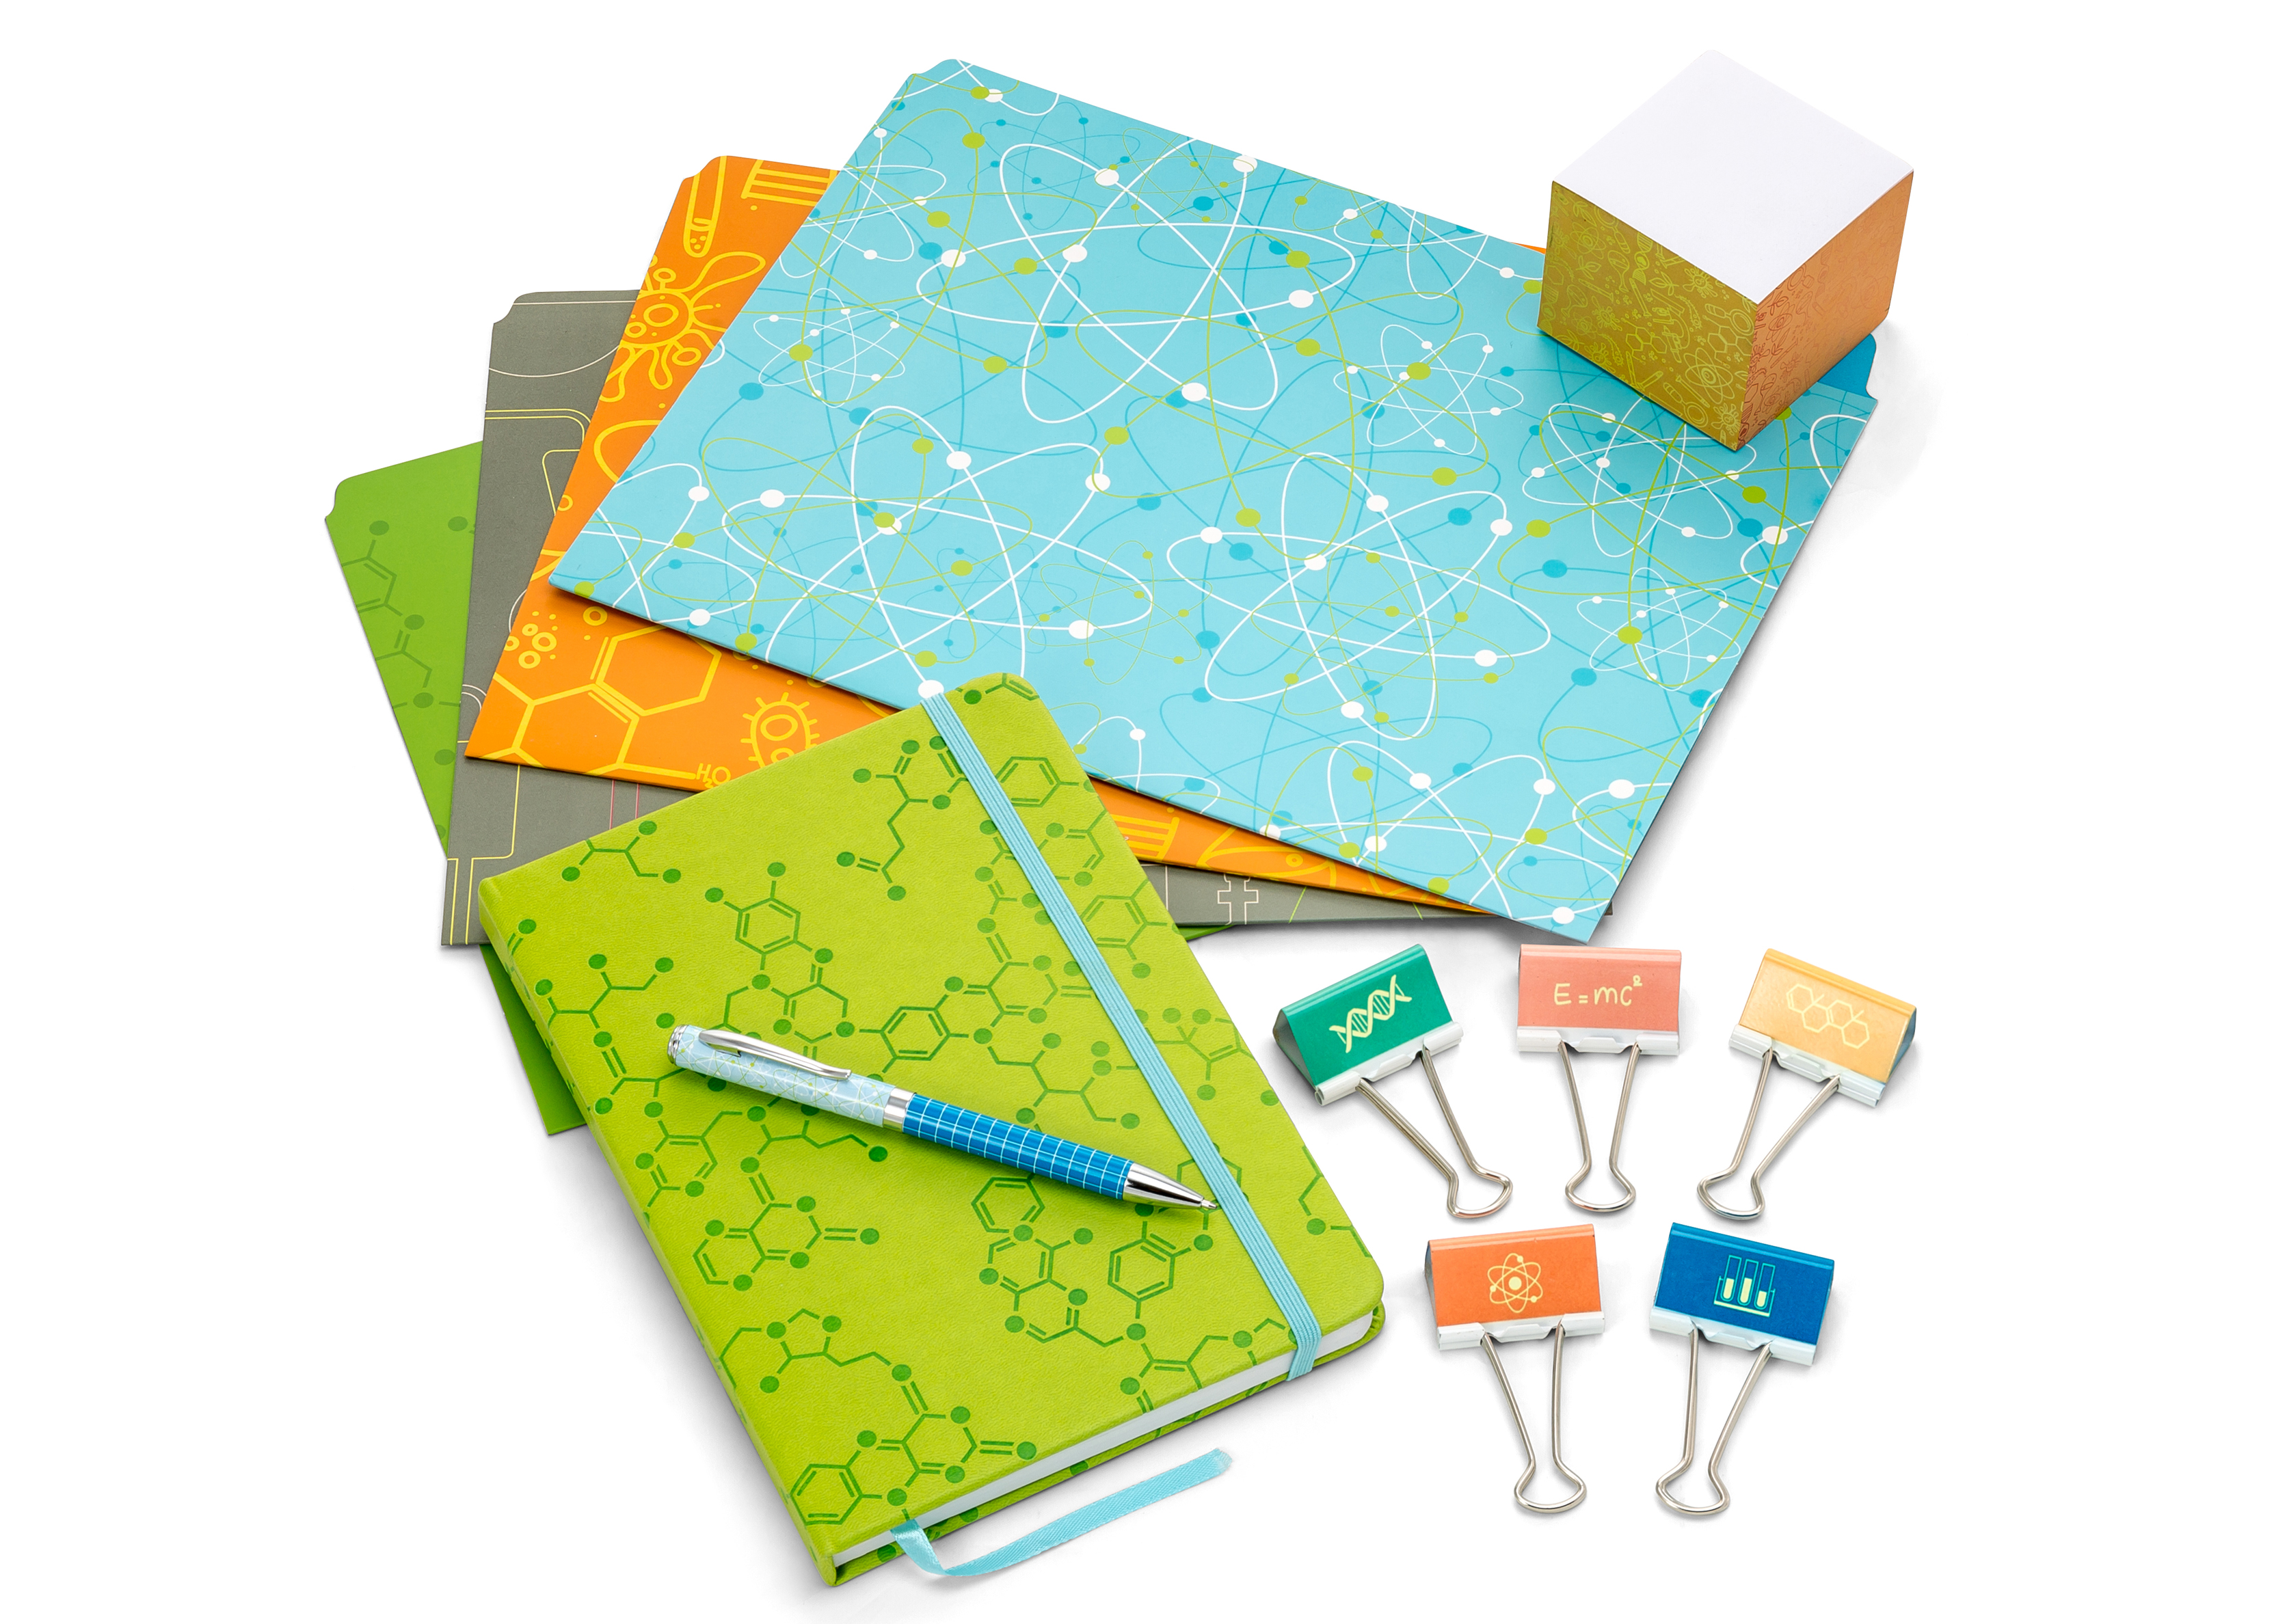 Science stationery set.